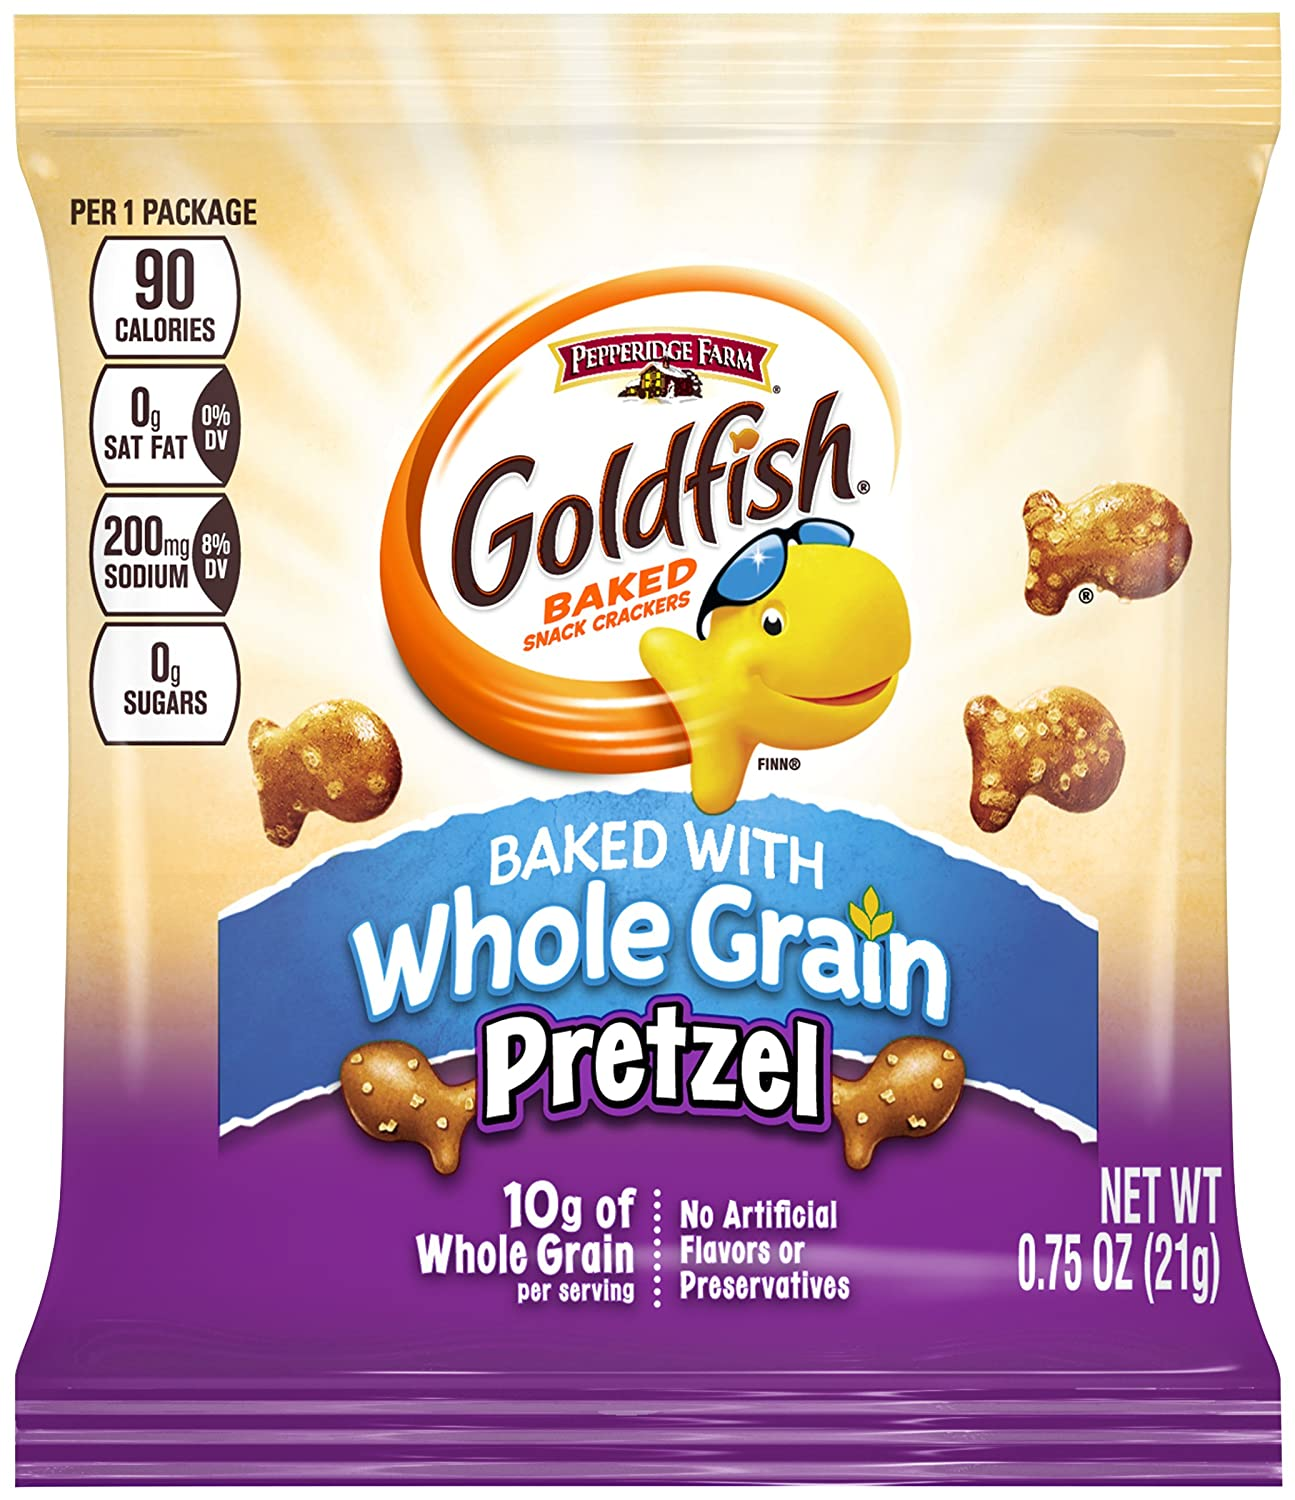 Pretzel Fishies